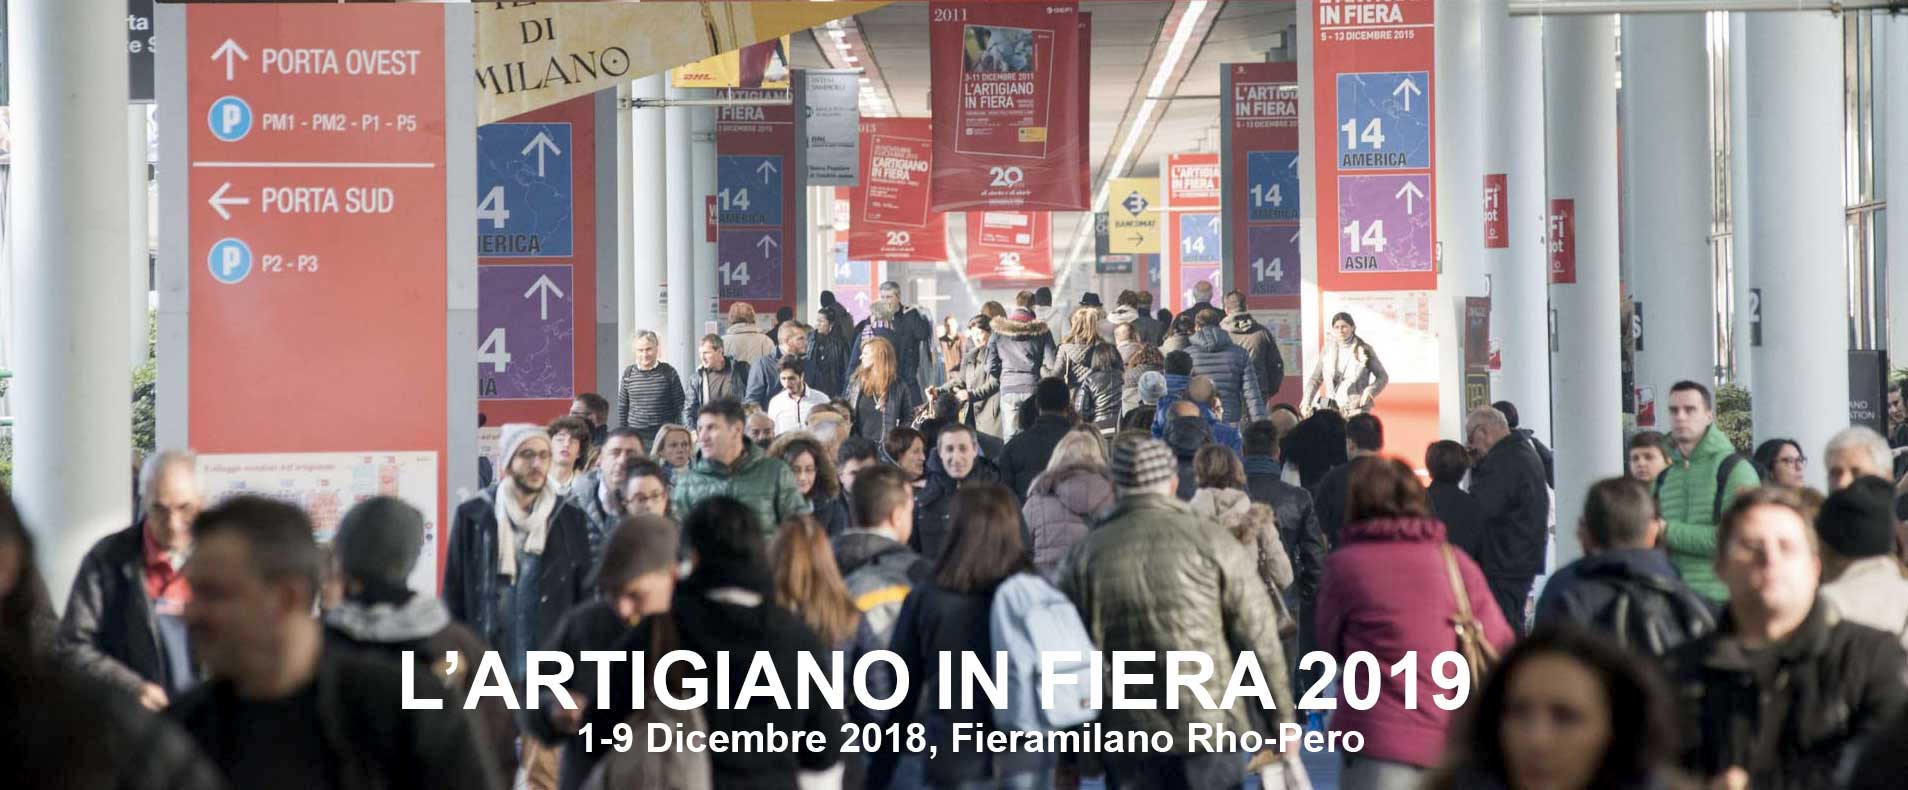 Your hotel convenient for Fieramilano Rho-Pero: Artigiano in Fiera!